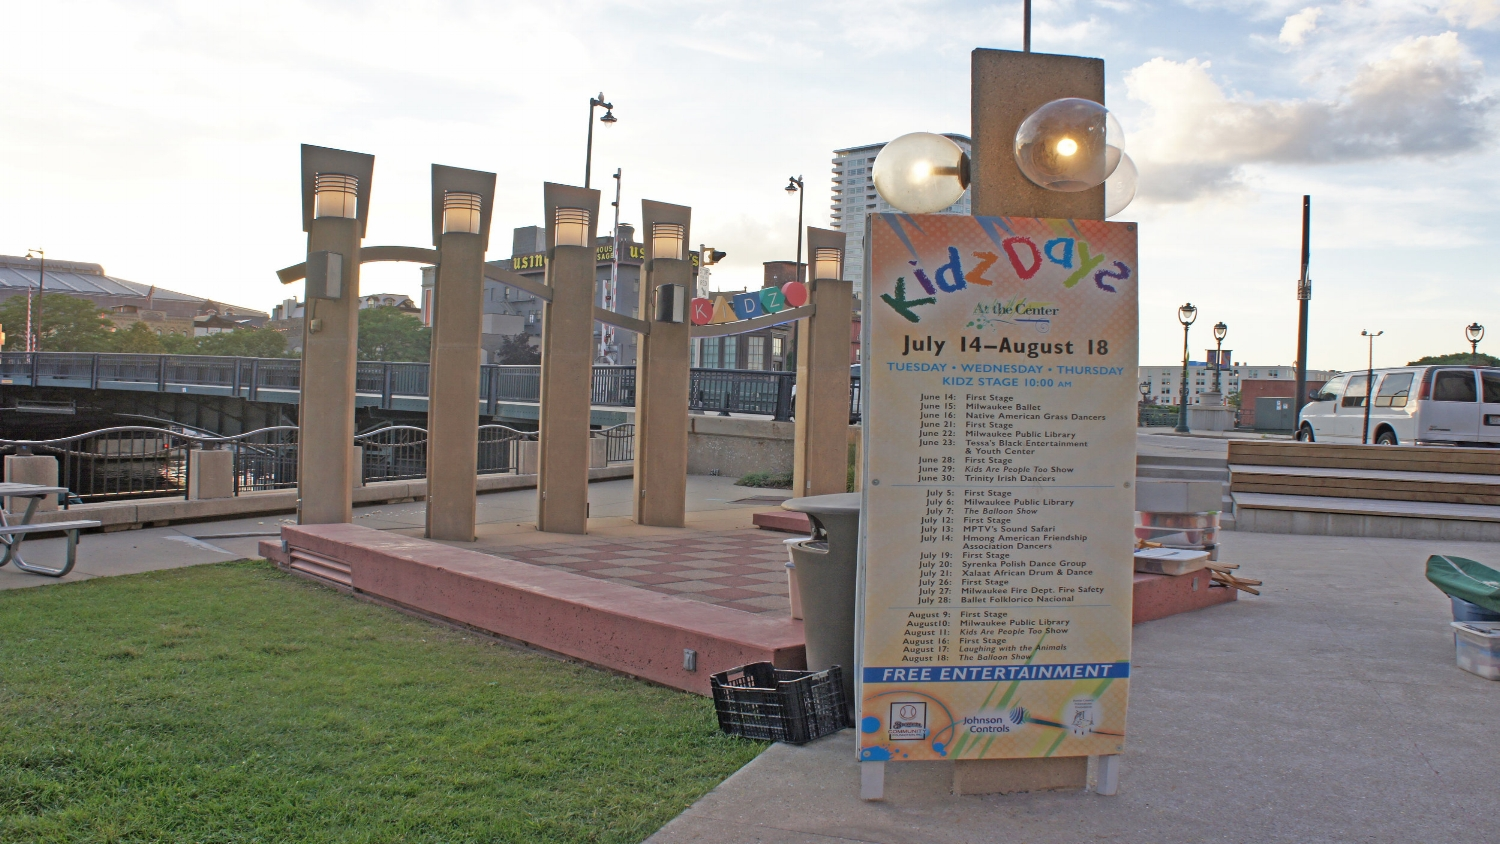 Performing Arts Center Kids Zone